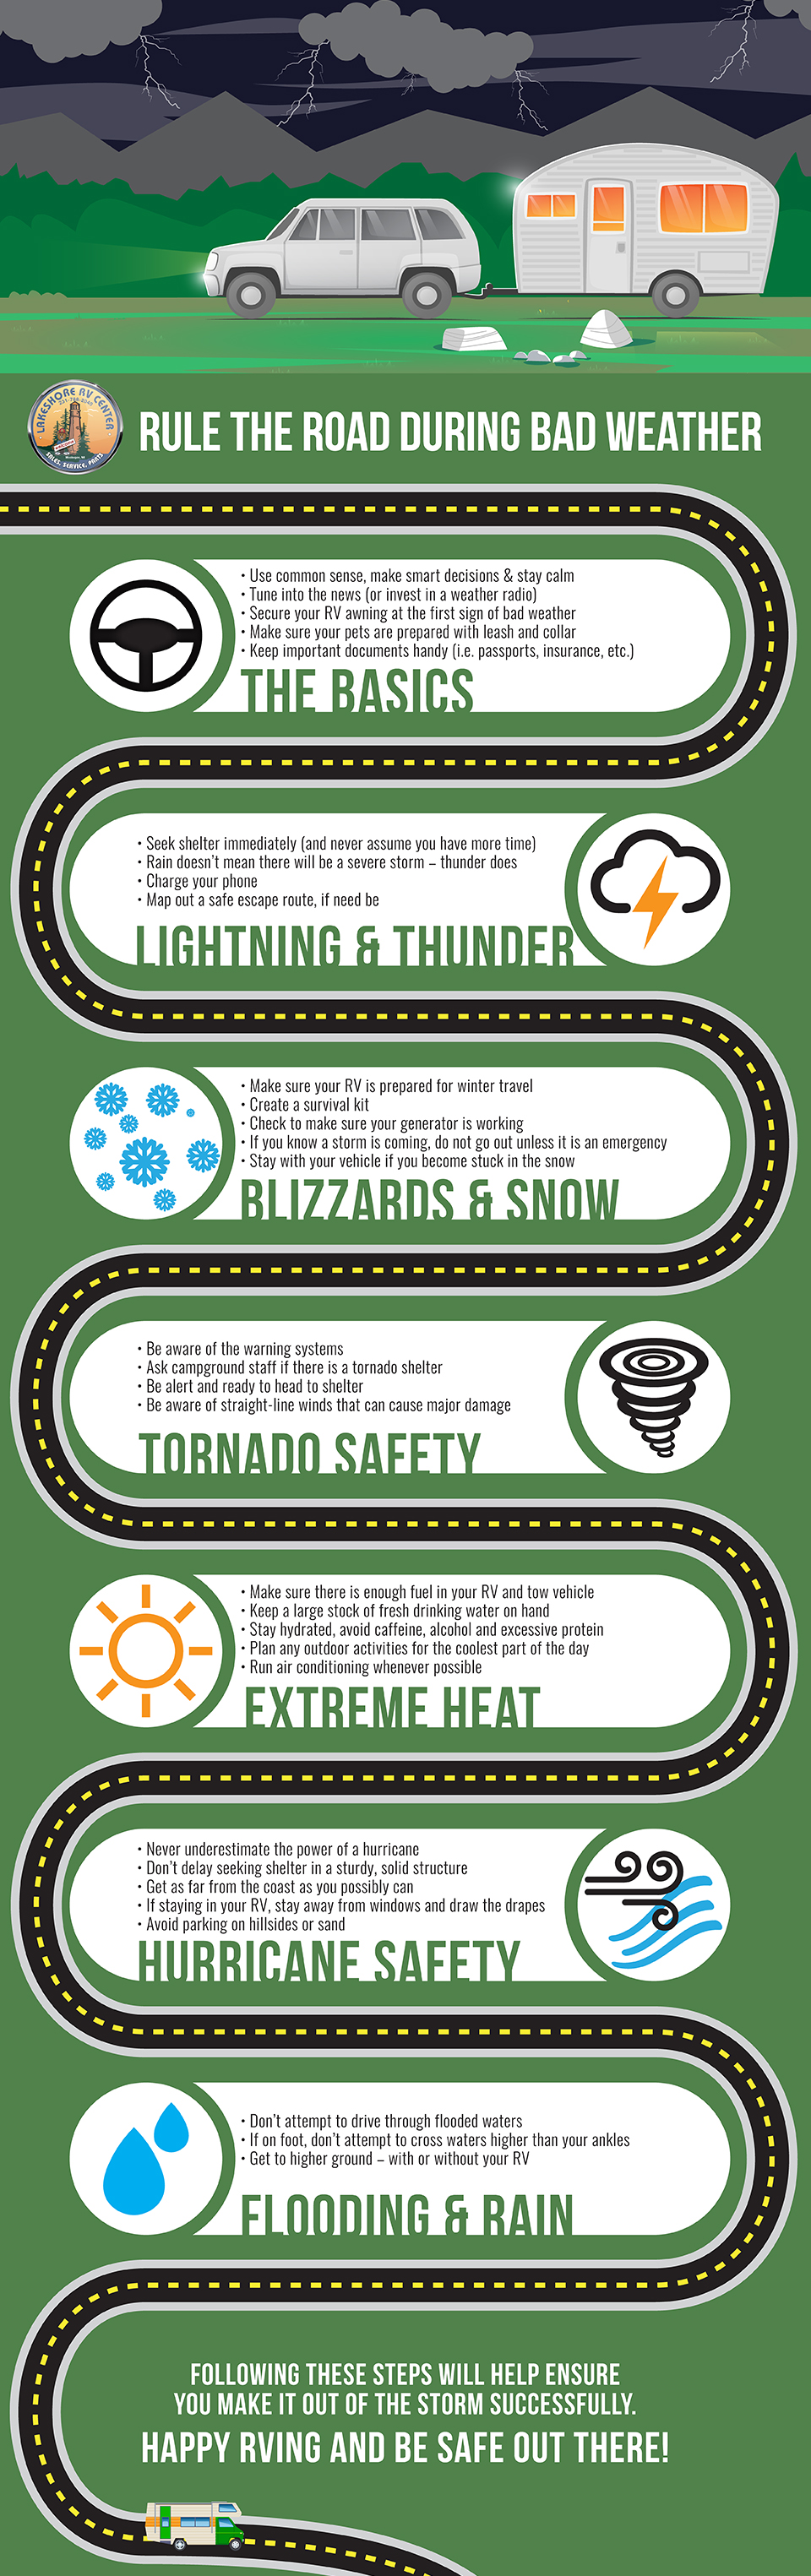 Lakeshore's Guide to RVing in bad weather.